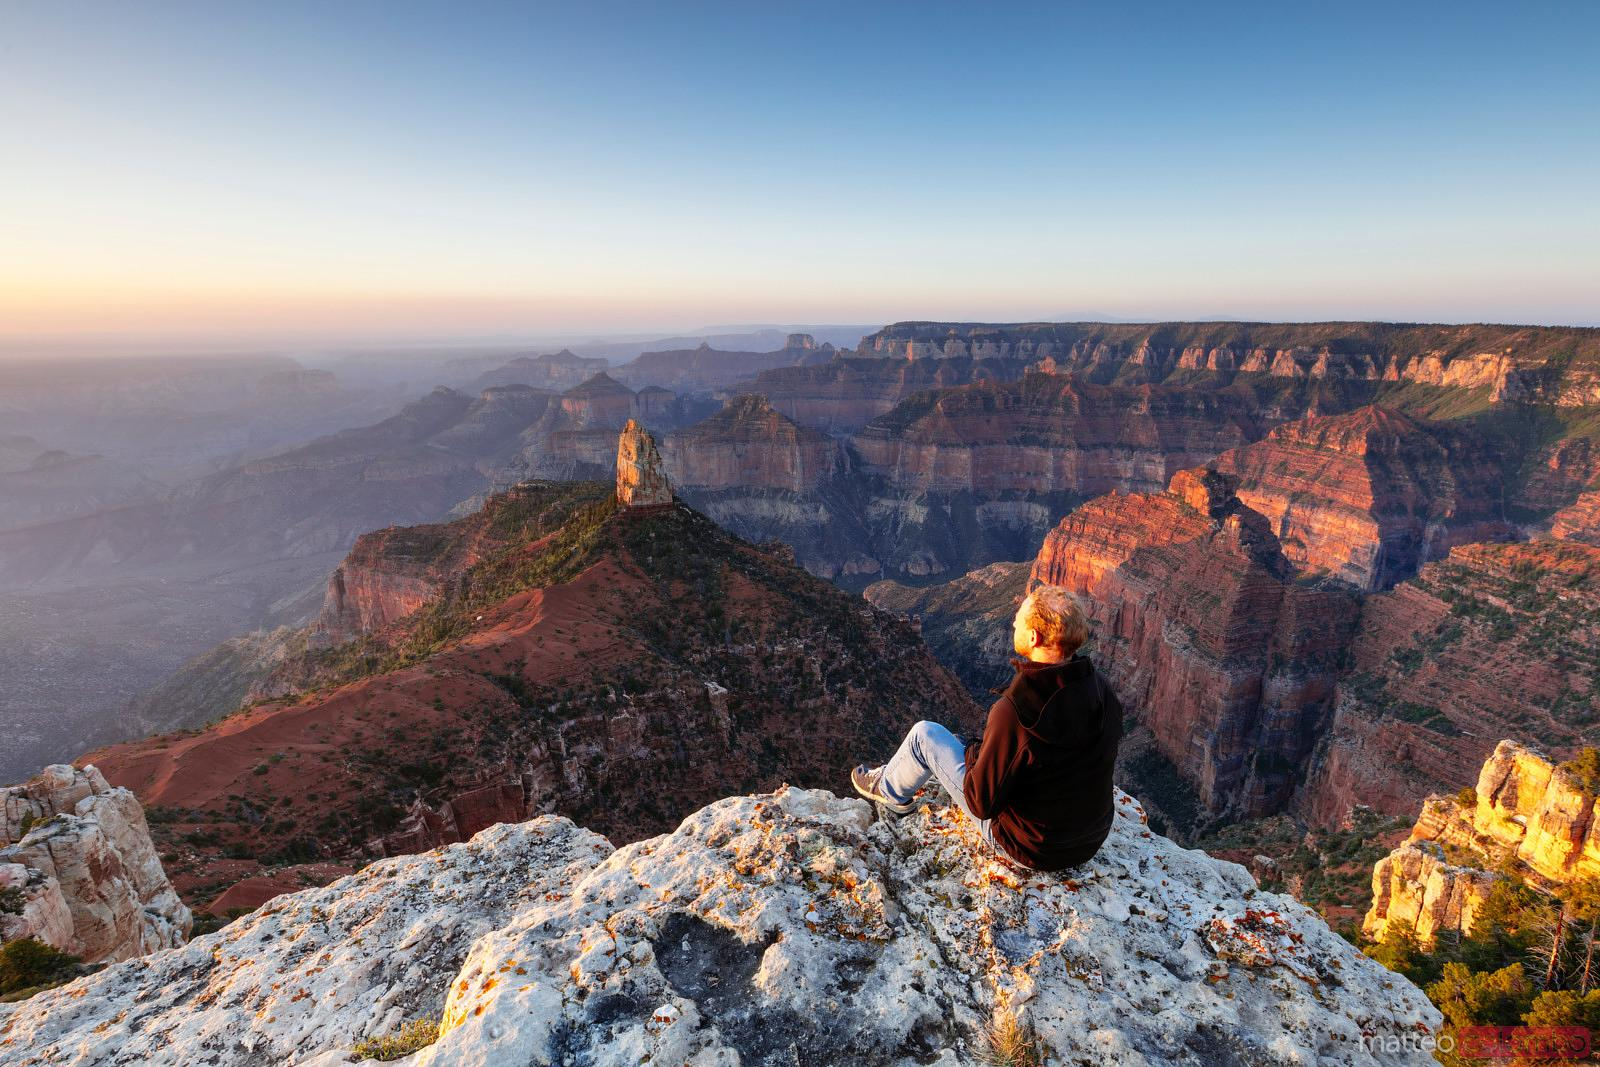 Tourist at the Grand Canyon, Arizona, USA